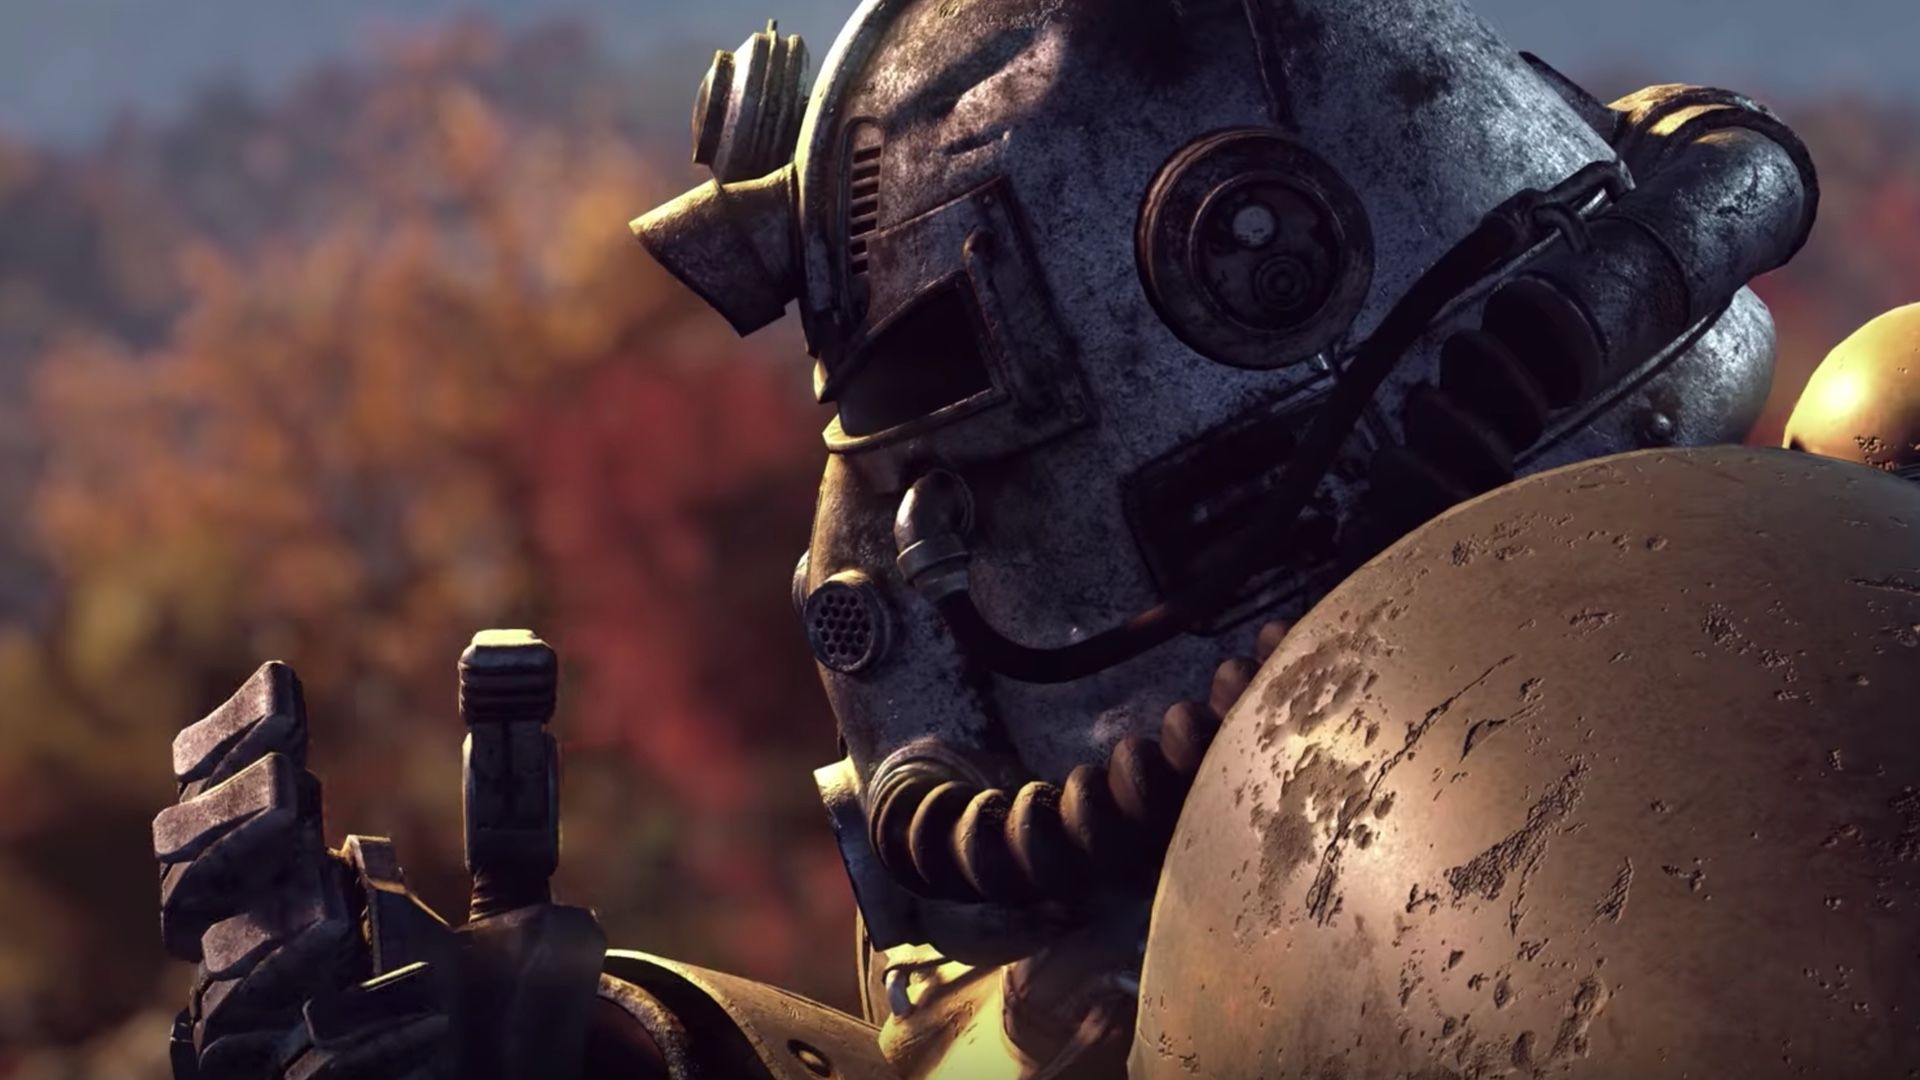 Bethesda fuit accidentellement les données des tickets de support